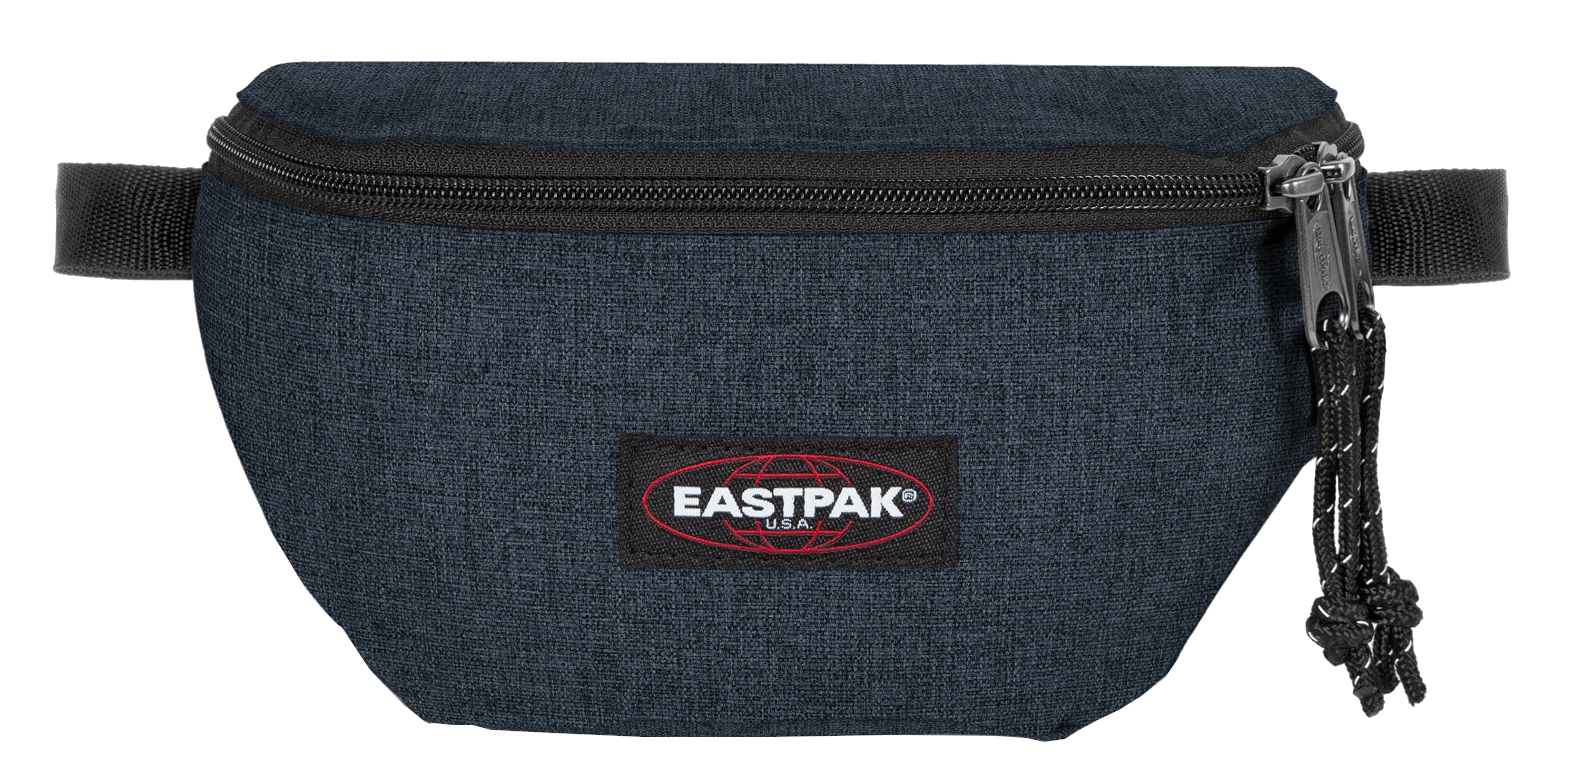 Eastpak 'Springer' Gürteltasche triple denim